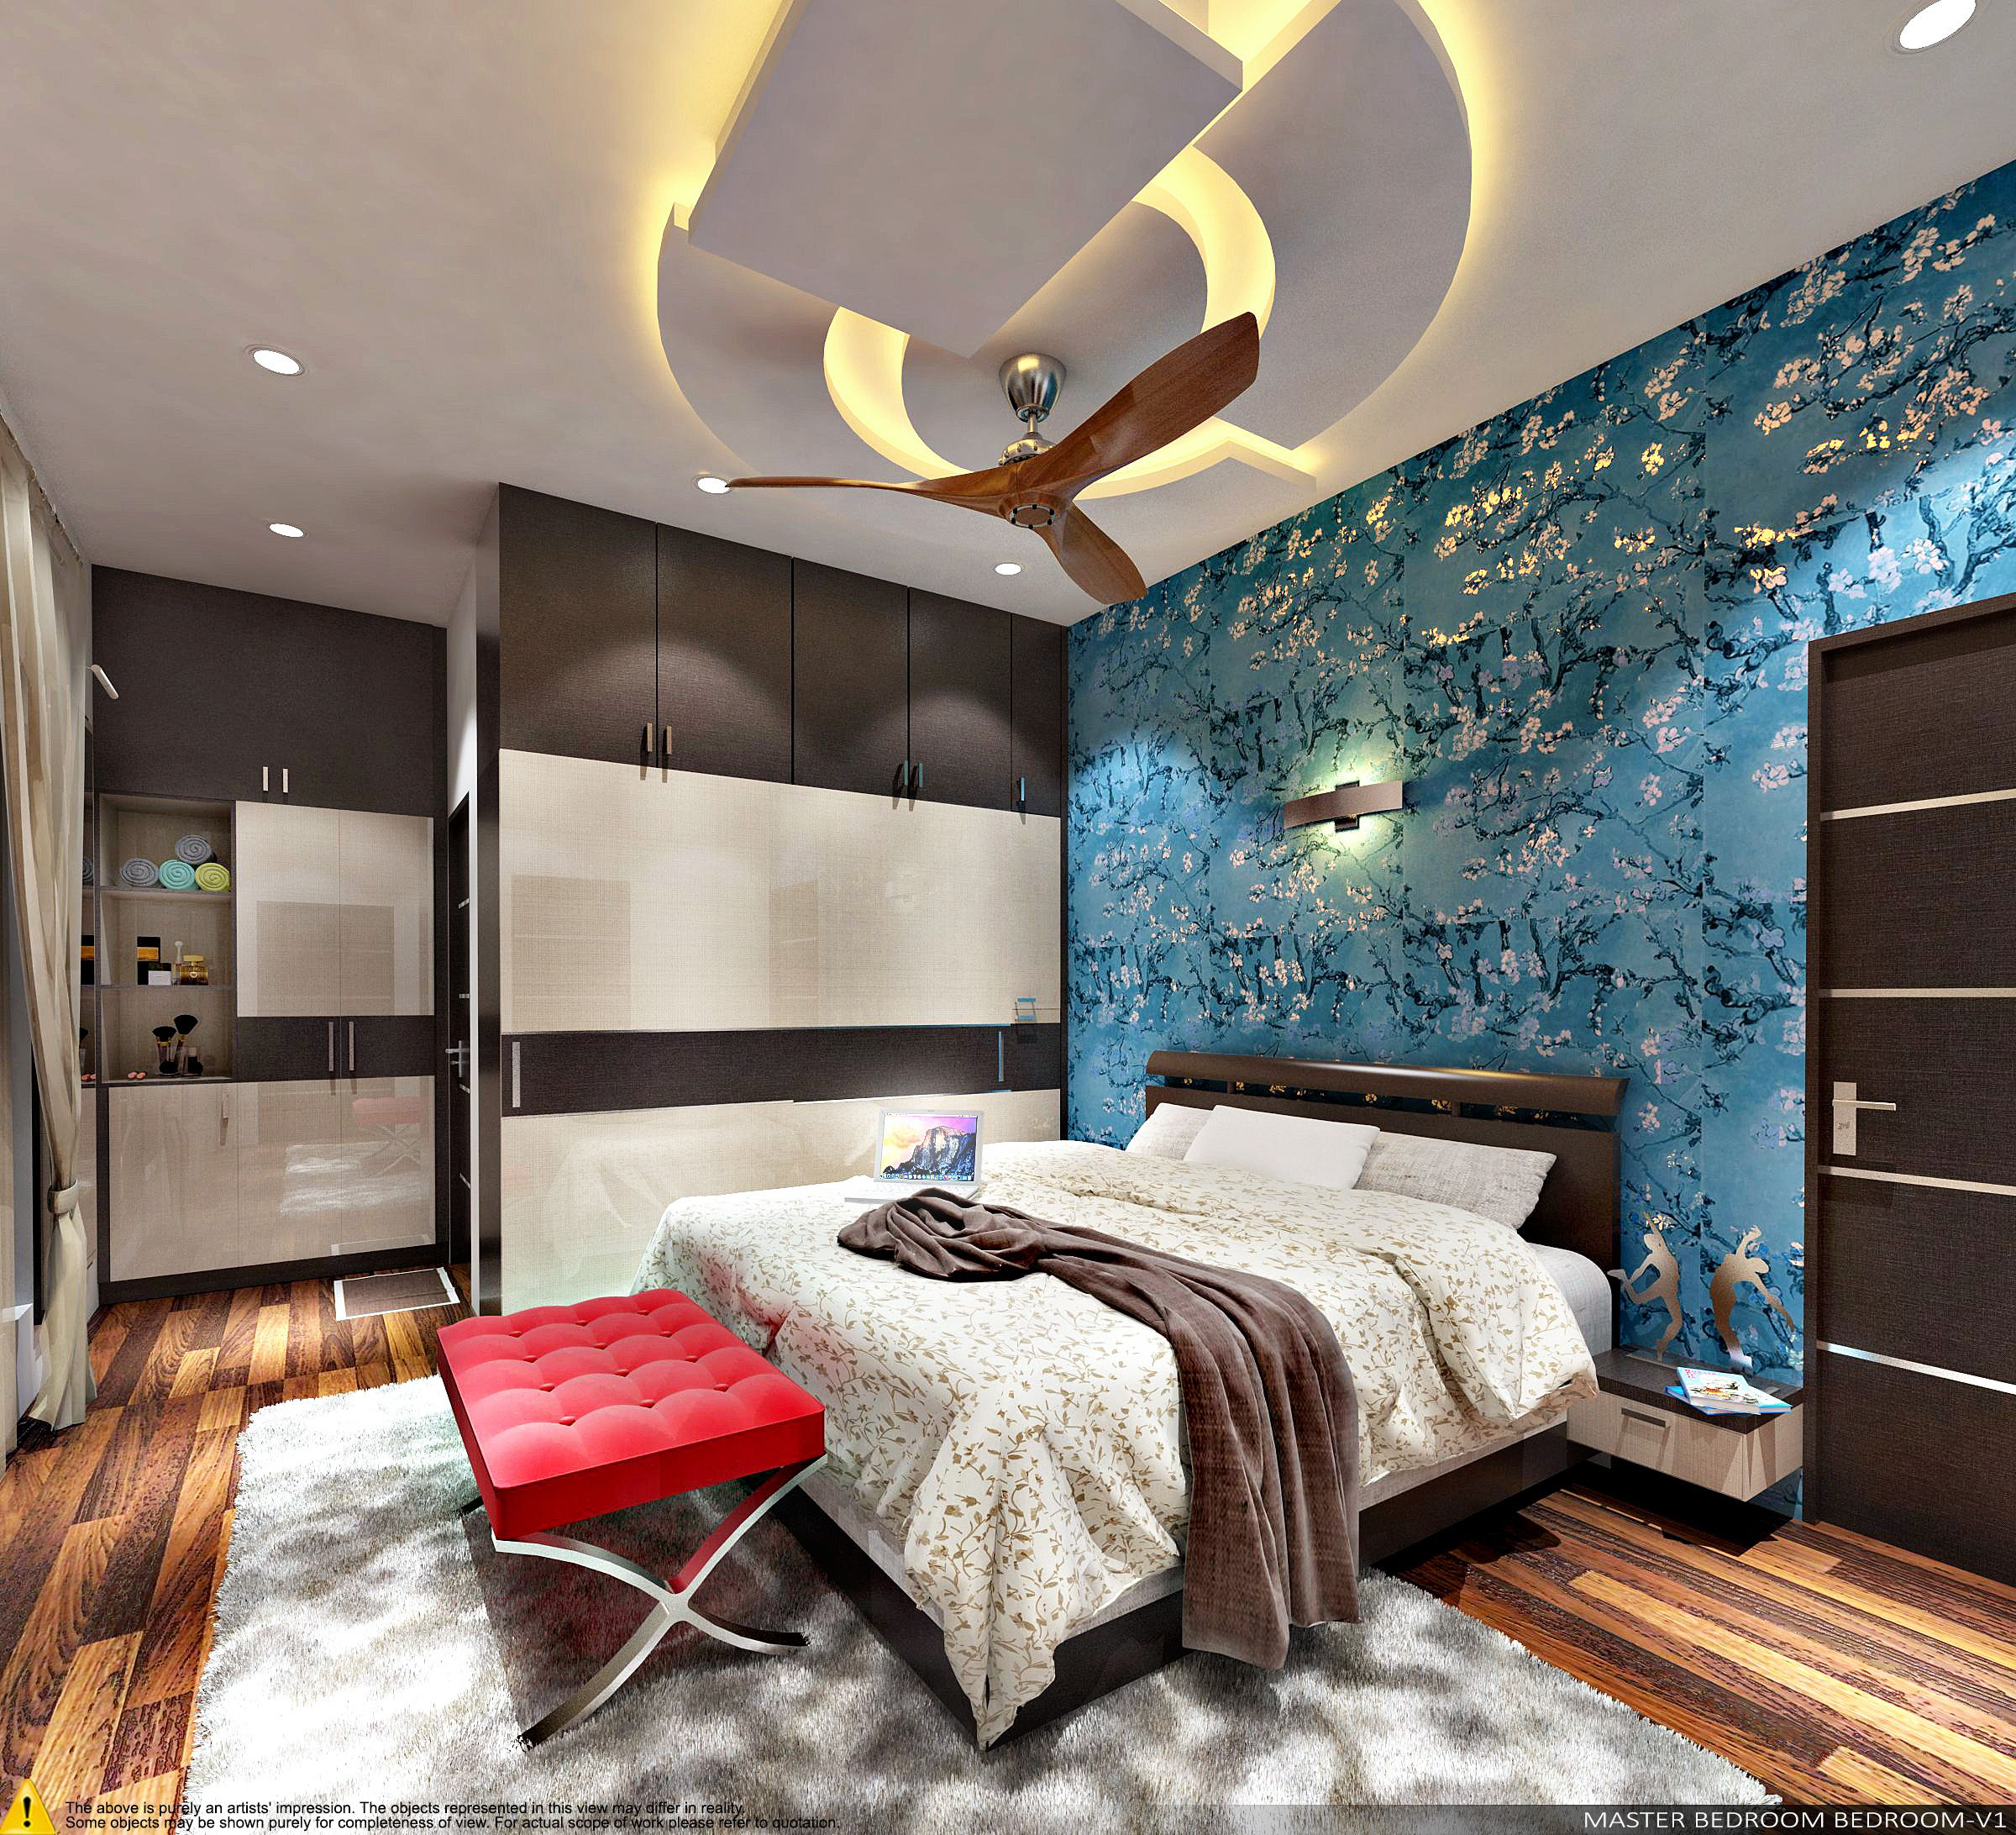 Bed Room At Its Best Get In Touch With Us For Any Interior Requirements Visit Www Magnonindia Com Interior House Interior Interior Design